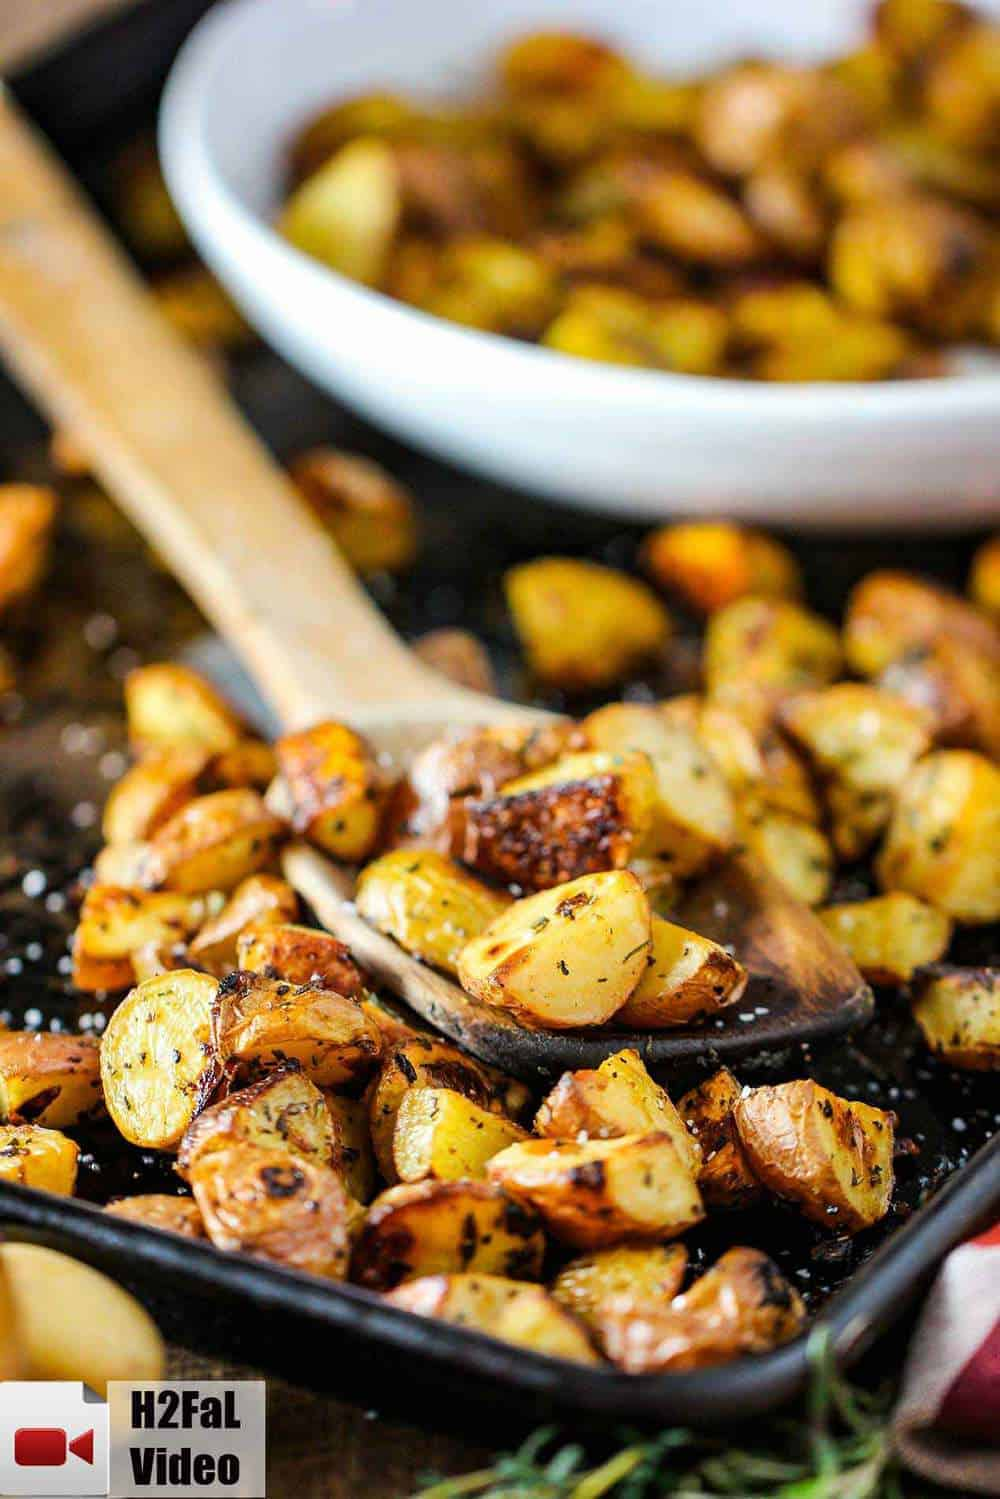 Roasted potatoes with balsamic and herbs on a baking sheet with a wooden spoon.